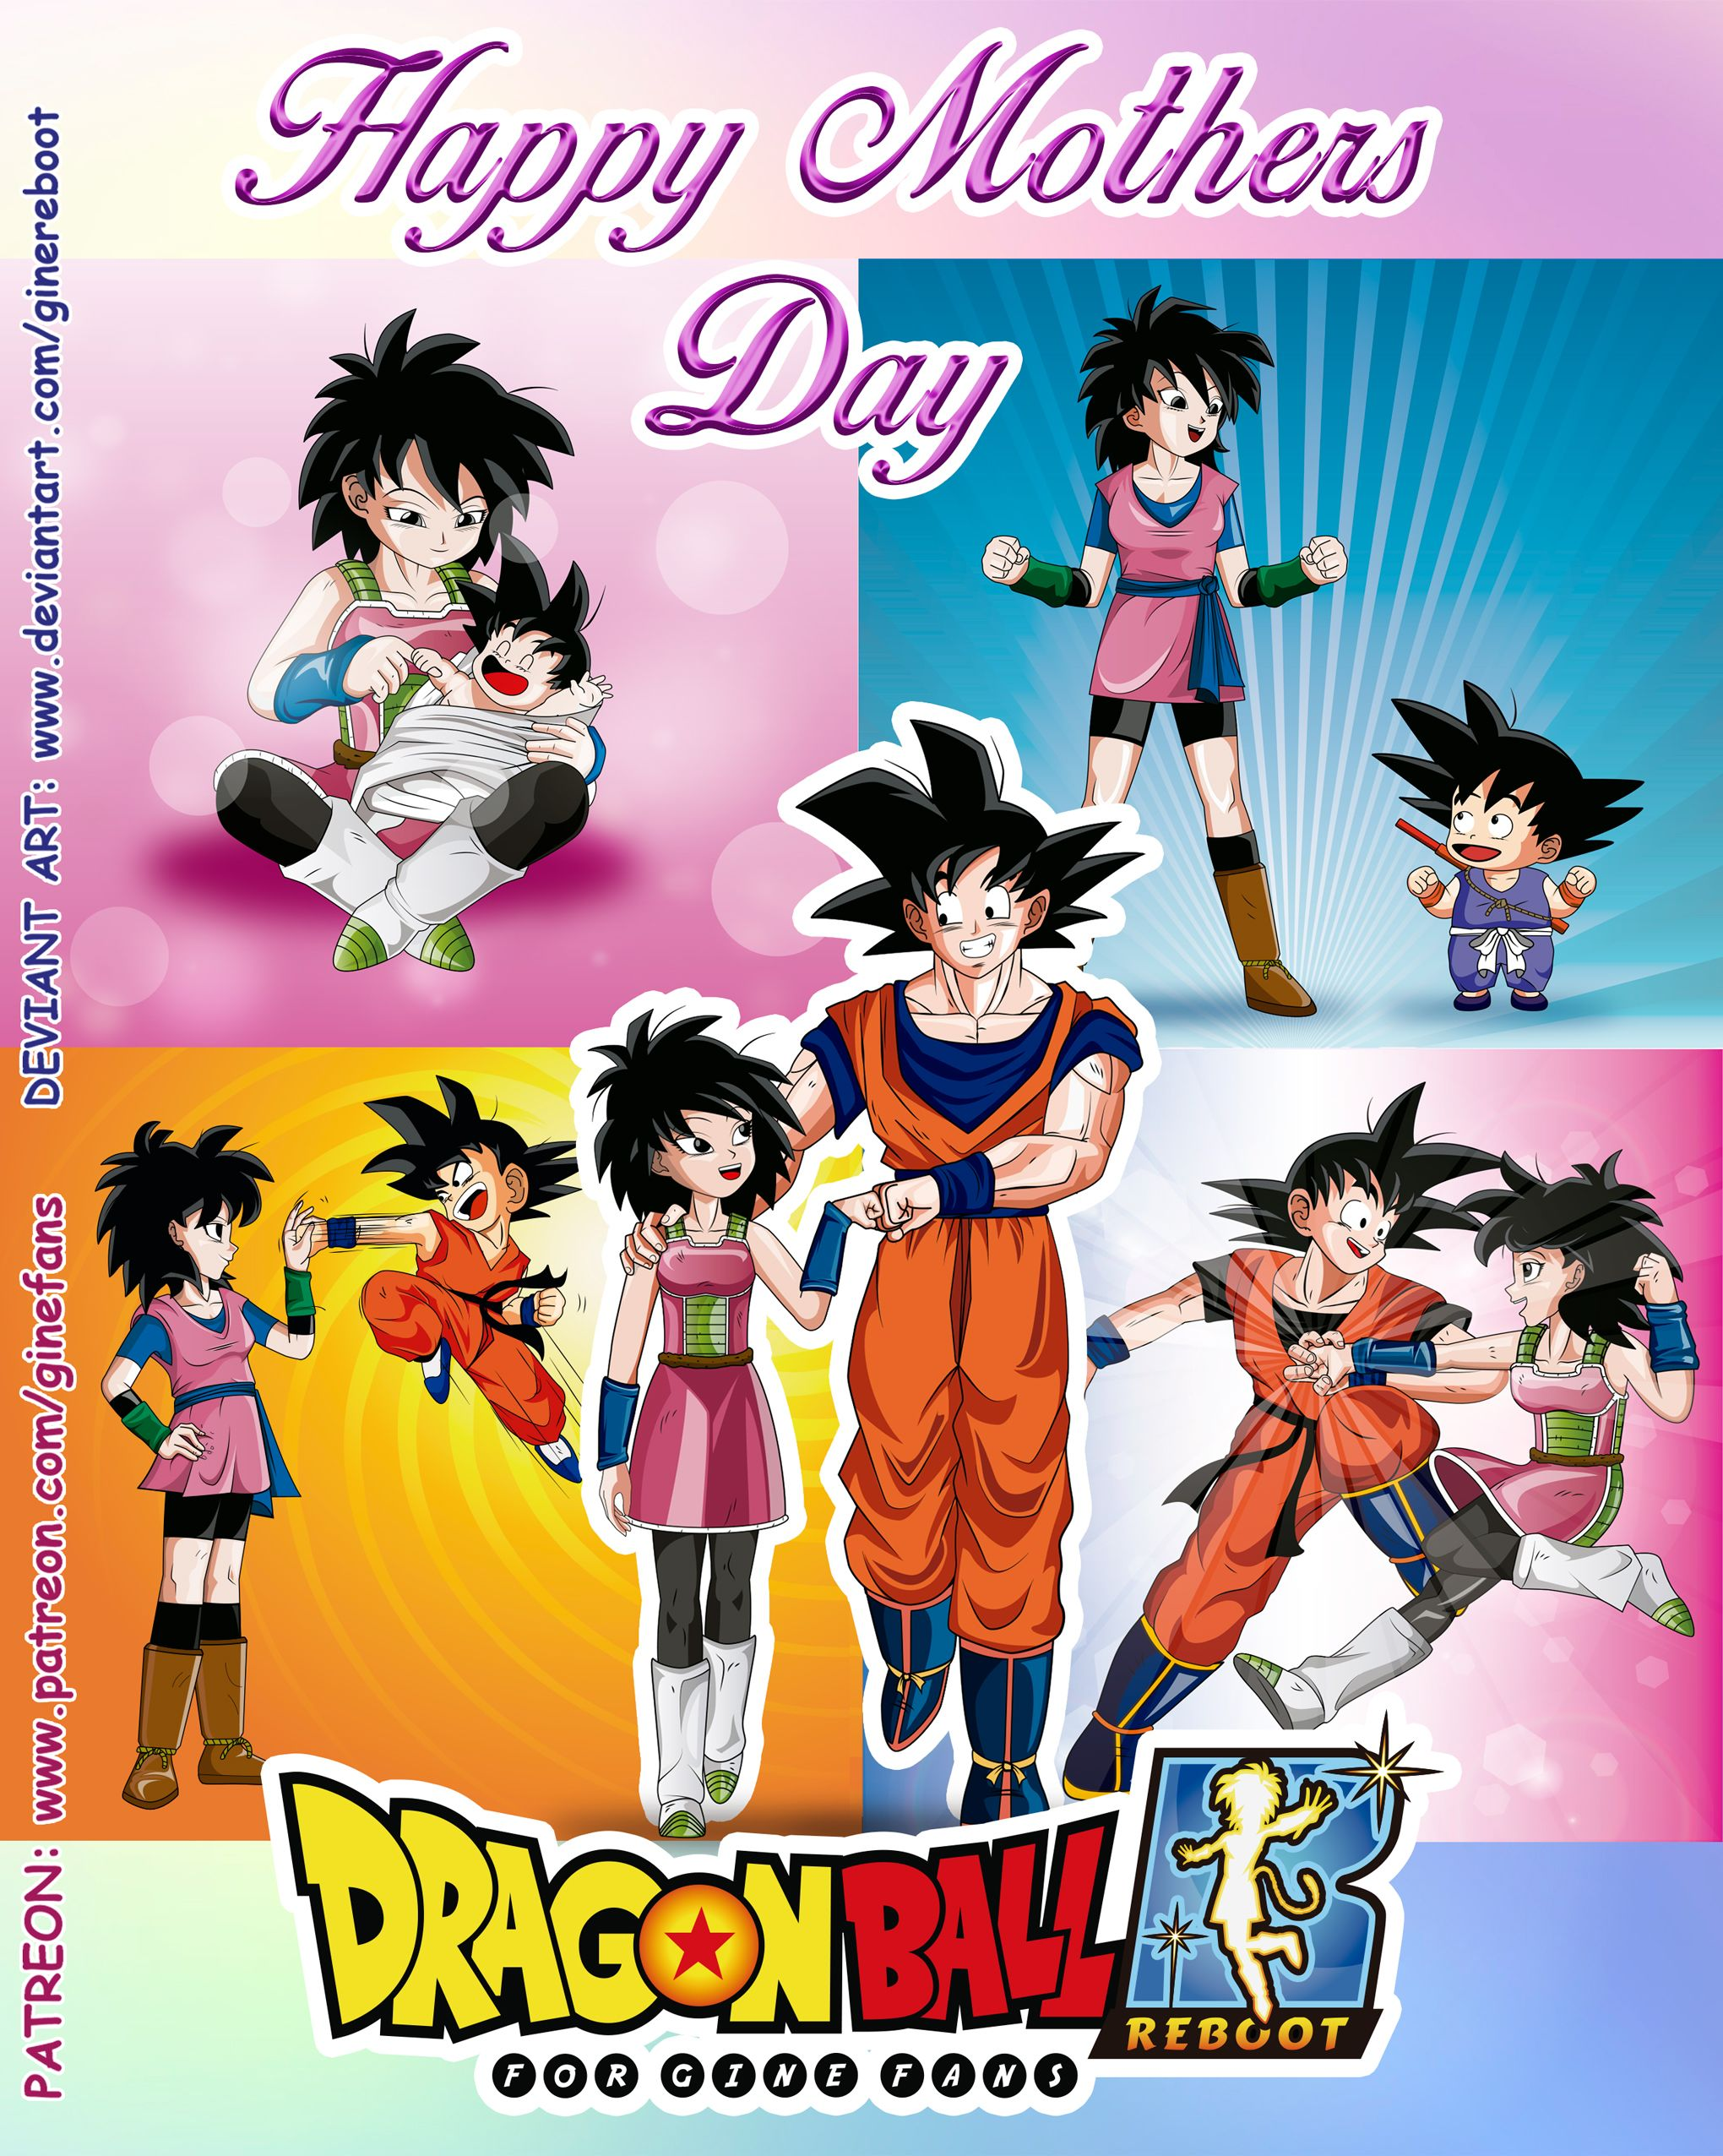 Gine Dragon Ball Reboot Is Creating For Gine Fans Patreon Dragon Ball Artwork Dragon Ball Art Anime Dragon Ball Super